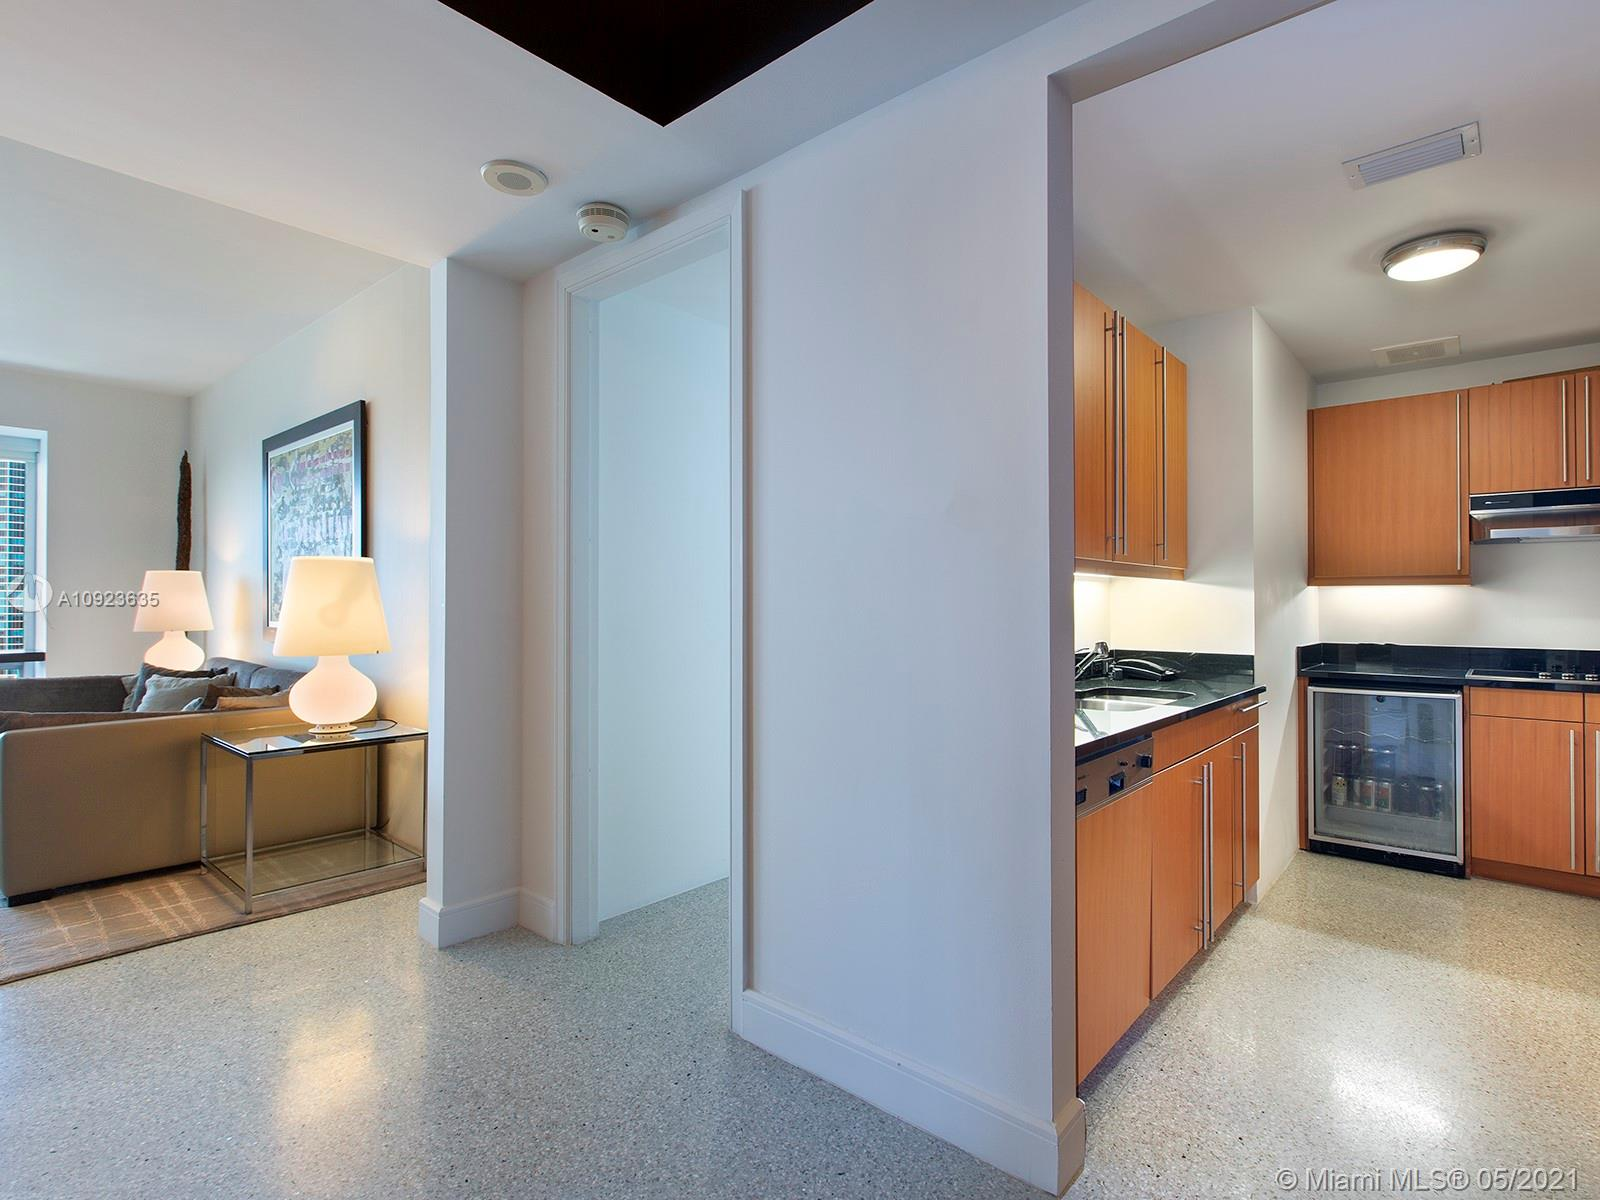 Located in downtown's refined Brickell neighborhood, this magnificent 3,154 Total SF corner unit offers exquisite open bay & city views. Conveniently situated inside the luxurious Four Seasons Hotel, this 3 BD/3.2 BA combo residence is fully furnished & adorned with high-end finishes, such as 8-foot mahogany doors, floor-to-ceiling windows, and marble and wood flooring throughout. Features include expansive living and dining areas, a gourmet kitchen equipped with Viking and Miele appliances, granite countertops, and a wine cooler. Balcony is perfect for unwinding or entertaining! Enjoy iconic tropical vibes, palm trees, and a swaying breeze in the heart of Miami's financial & cultural center.